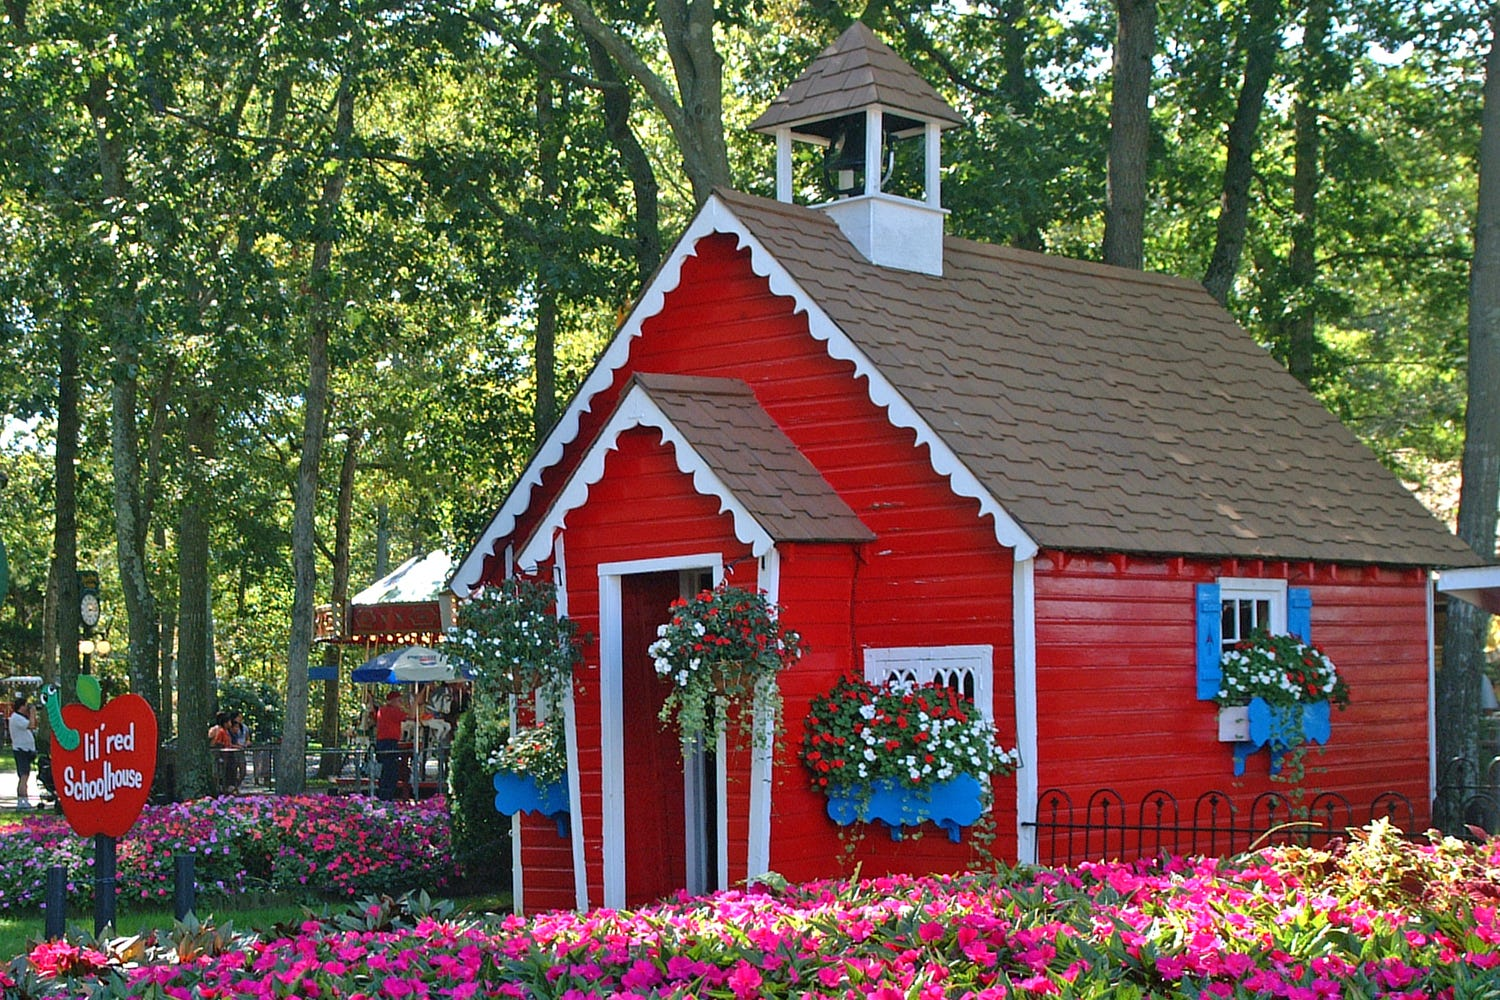 The Little Red Schoolhouse is among the attractions at Storybook Land in Egg Harbor Township.